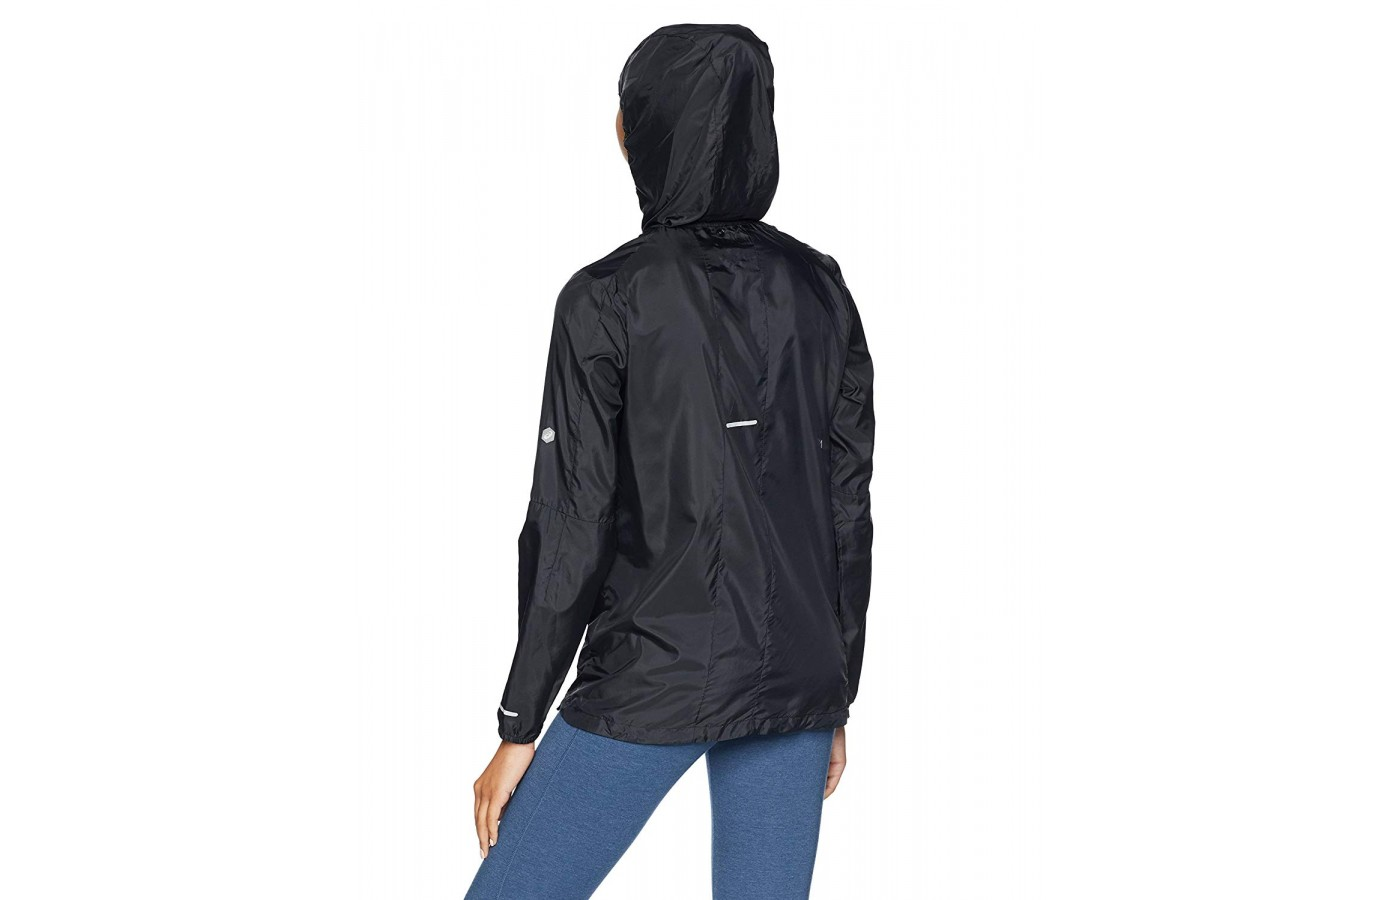 Asics Packable Jacket black back